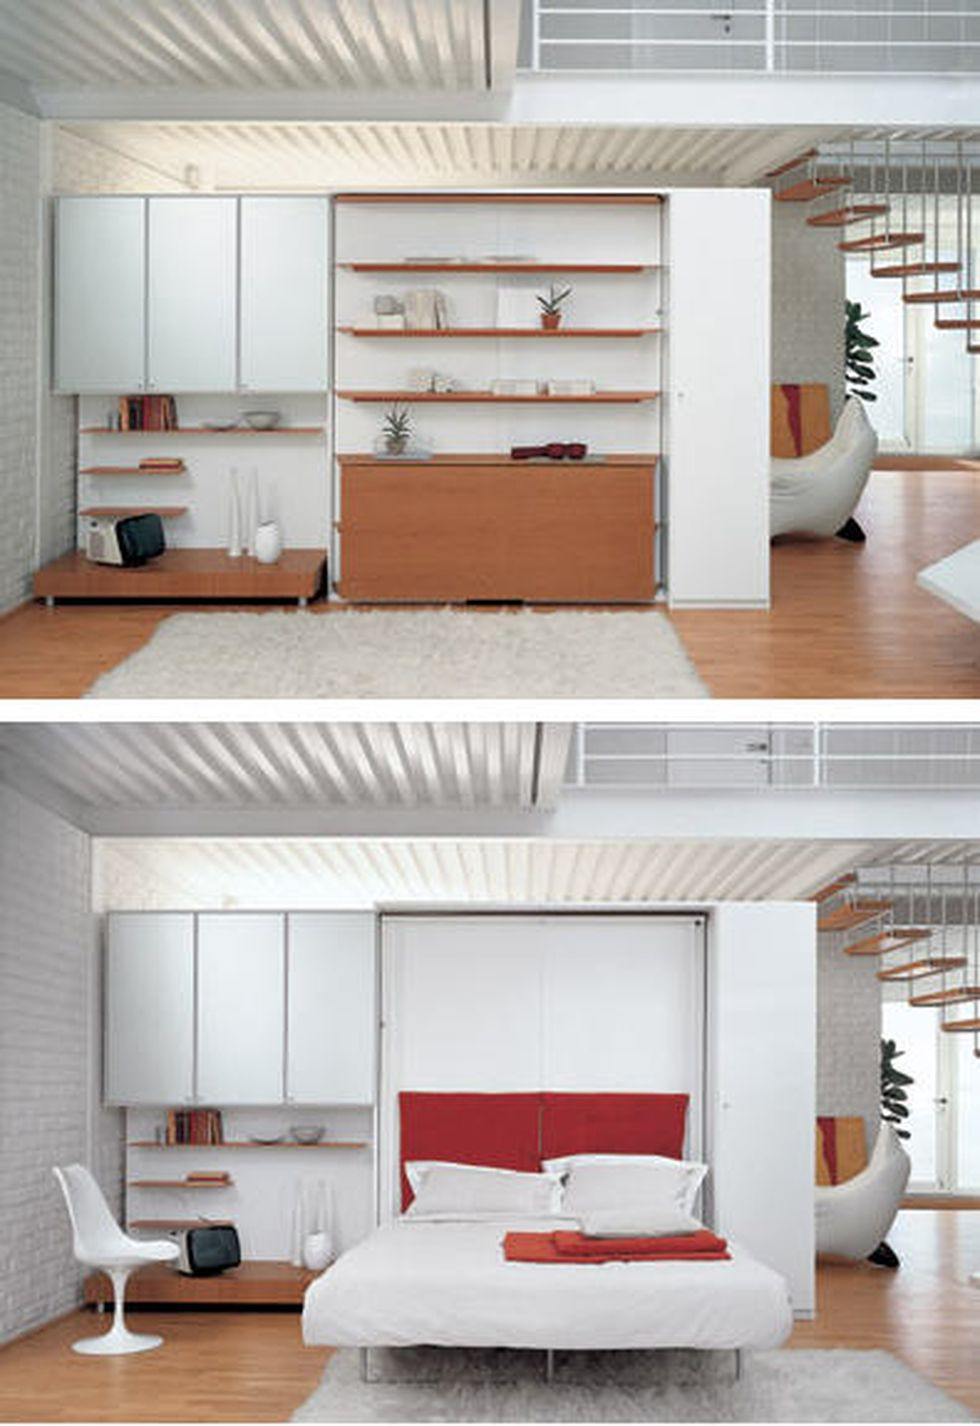 Saving space with creative folding bed ideas 59 - Hoommy.com